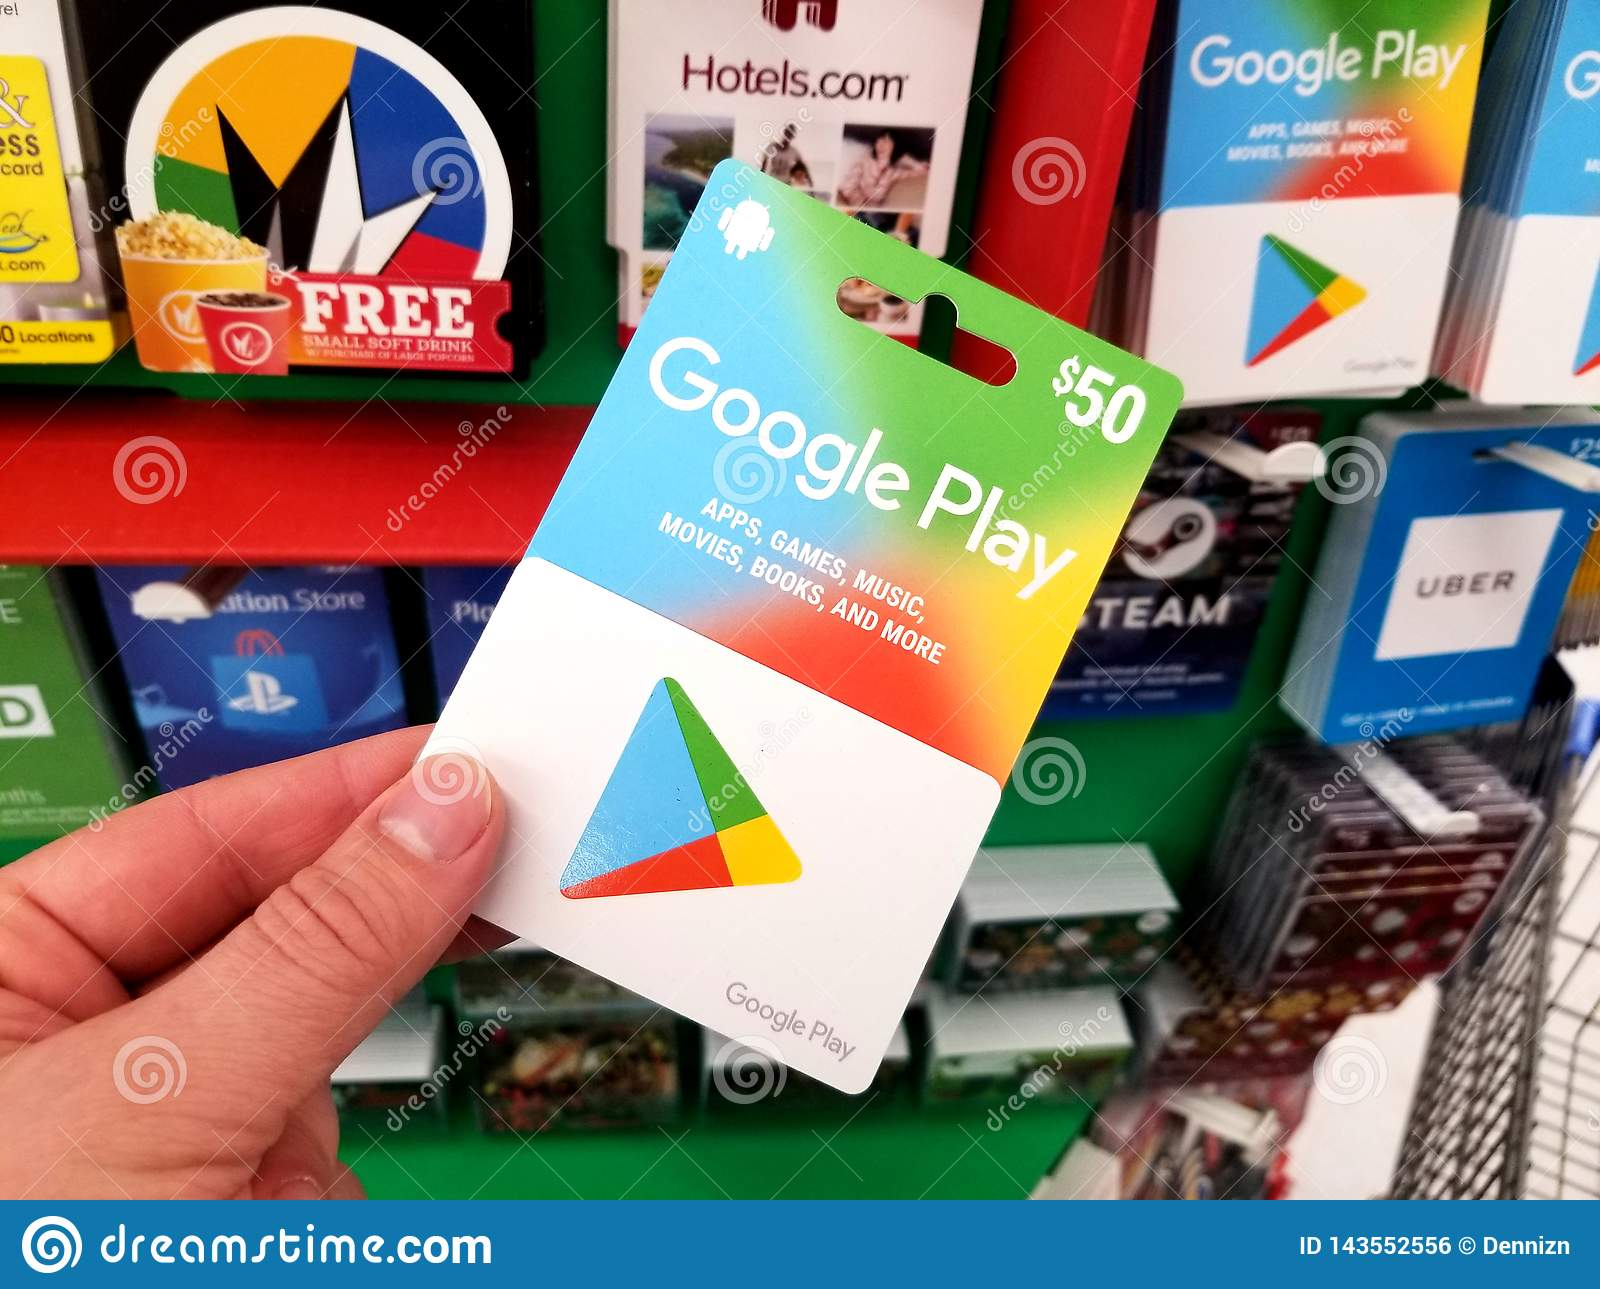 105 Google Play Card Photos Free Royalty Free Stock Photos From Dreamstime